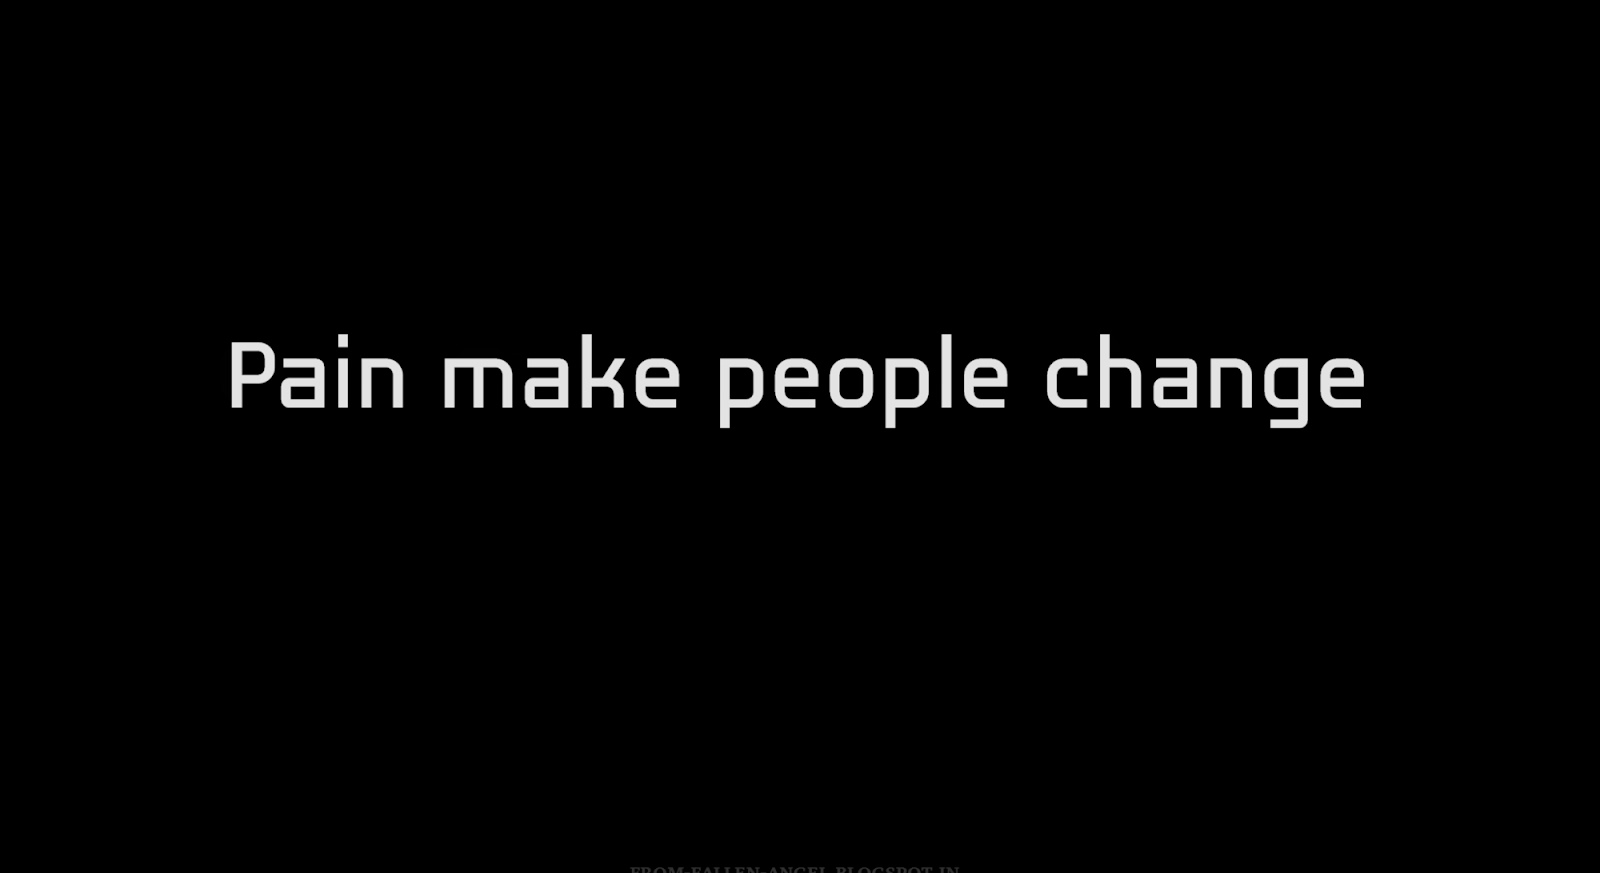 Pain make people change